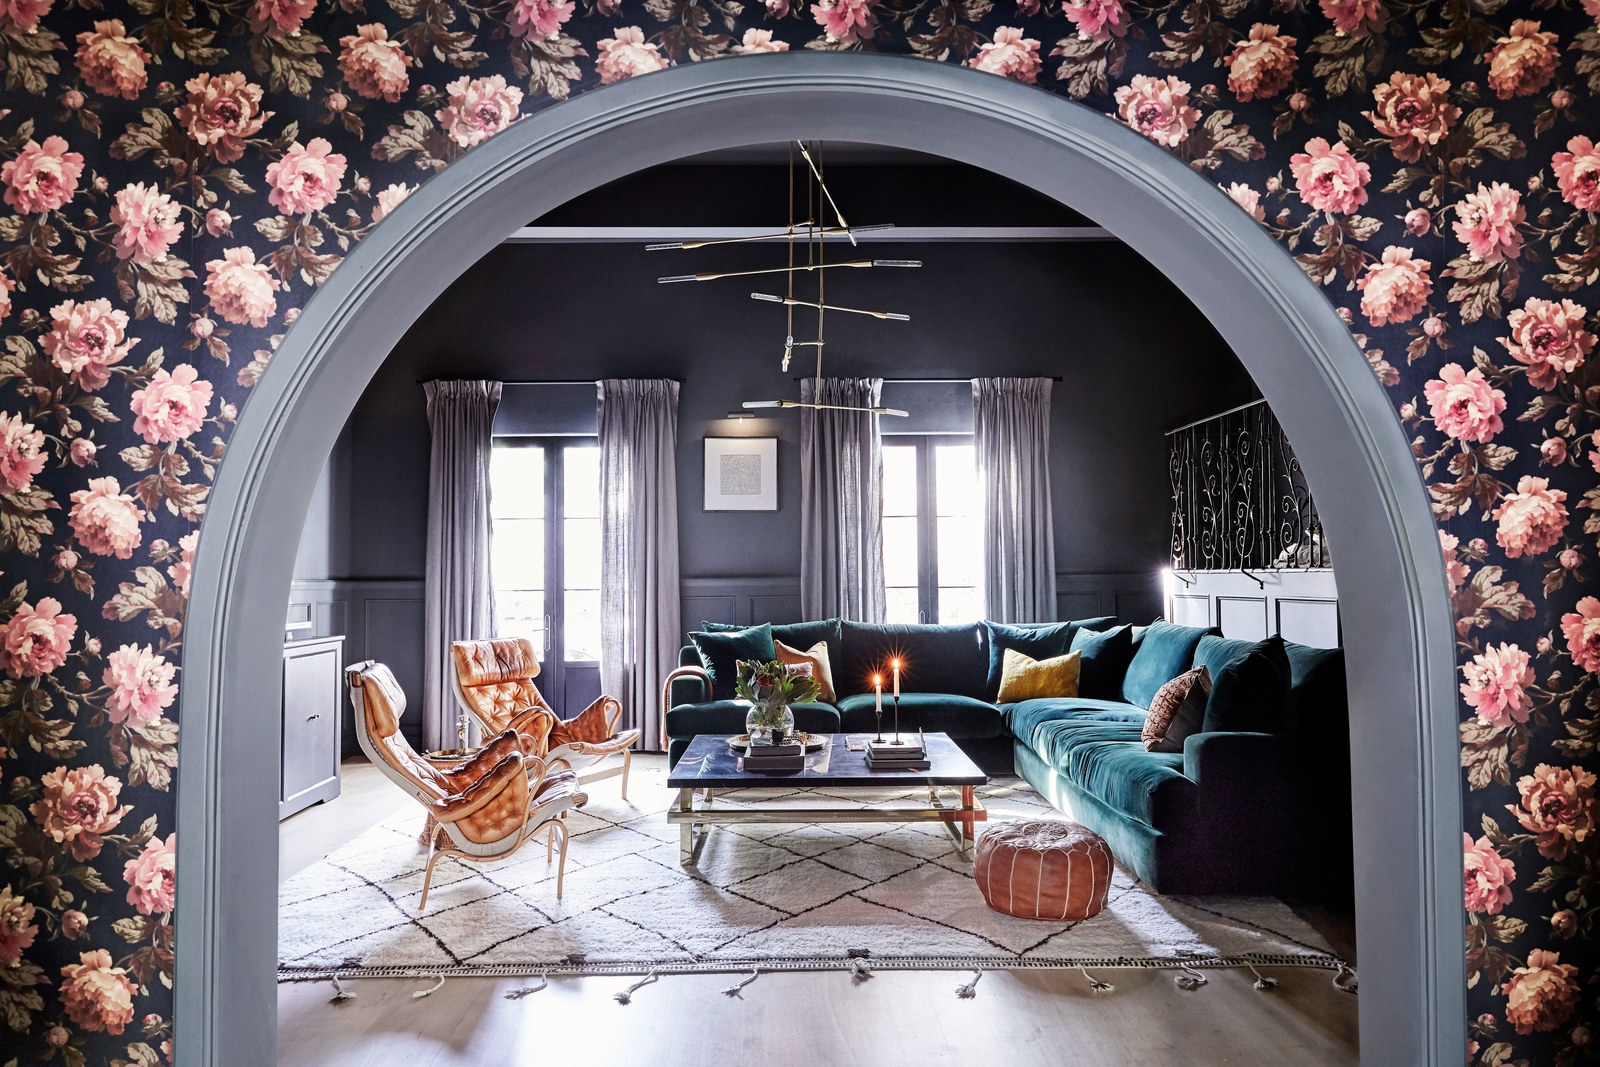 los angeles homes Los Angeles Homes: Meet Shay Mitchell's Redecorated Oasis 7